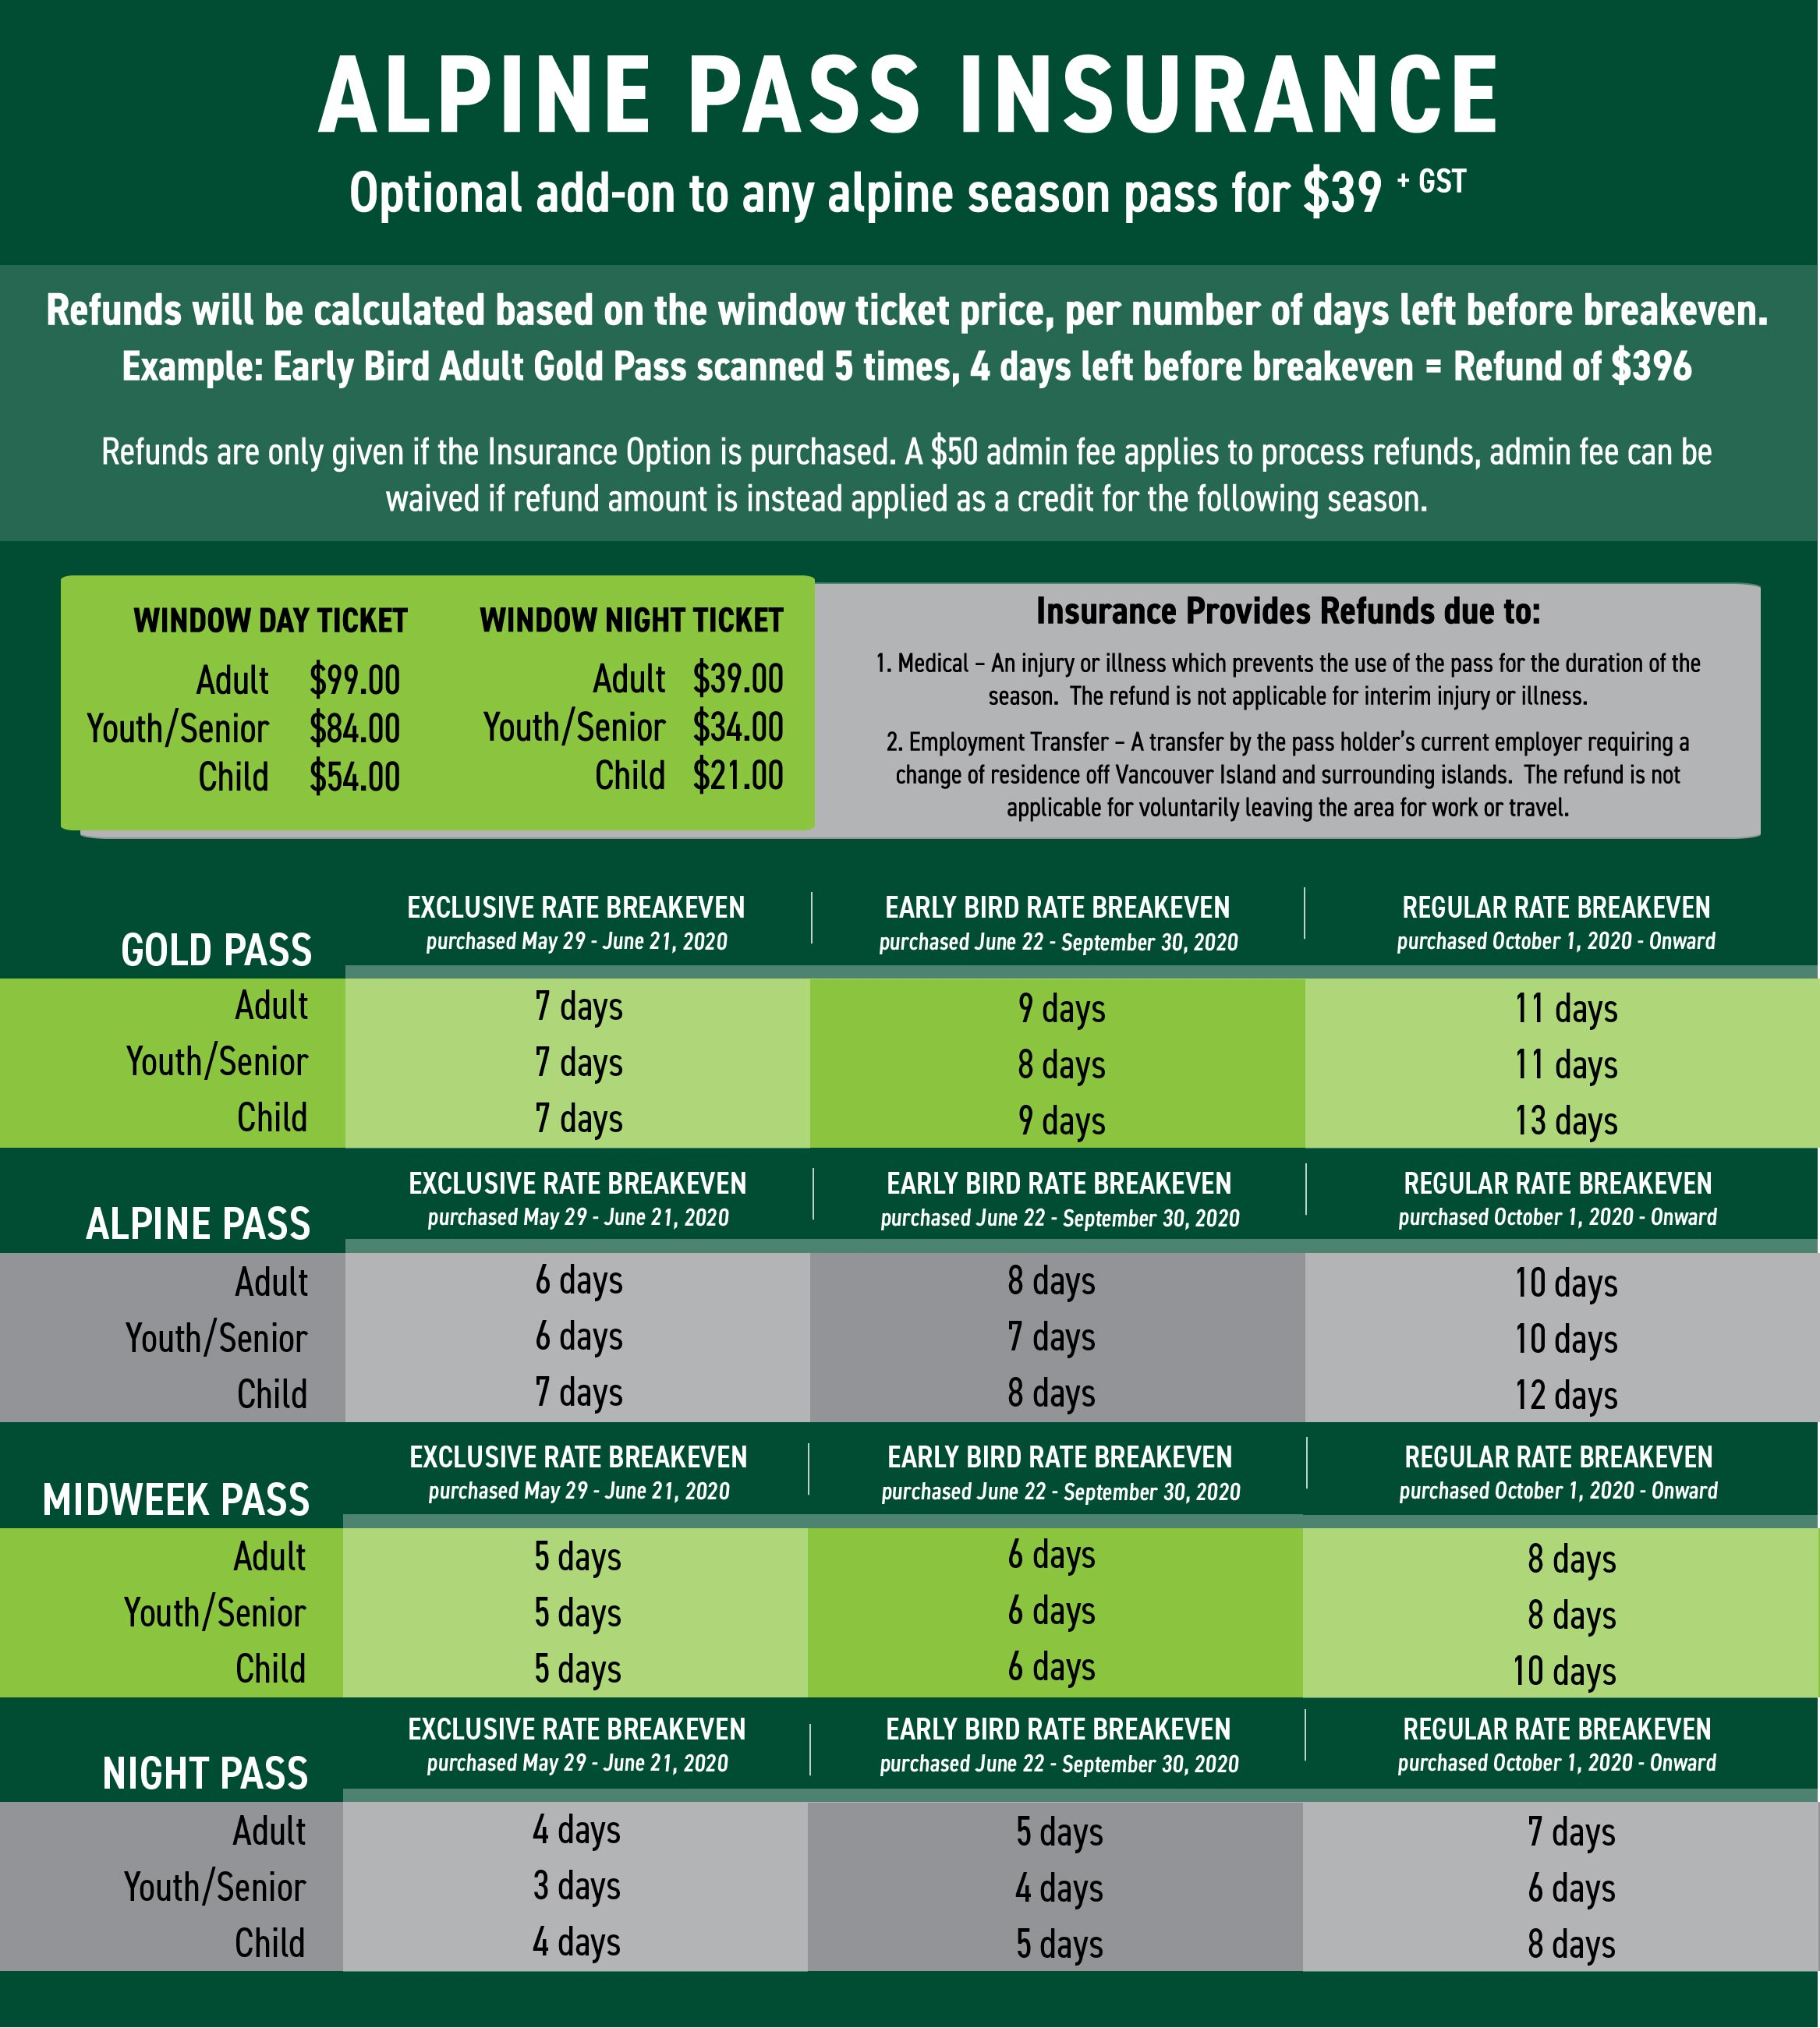 alpine-pass-refundable-insurance2020-21.jpg